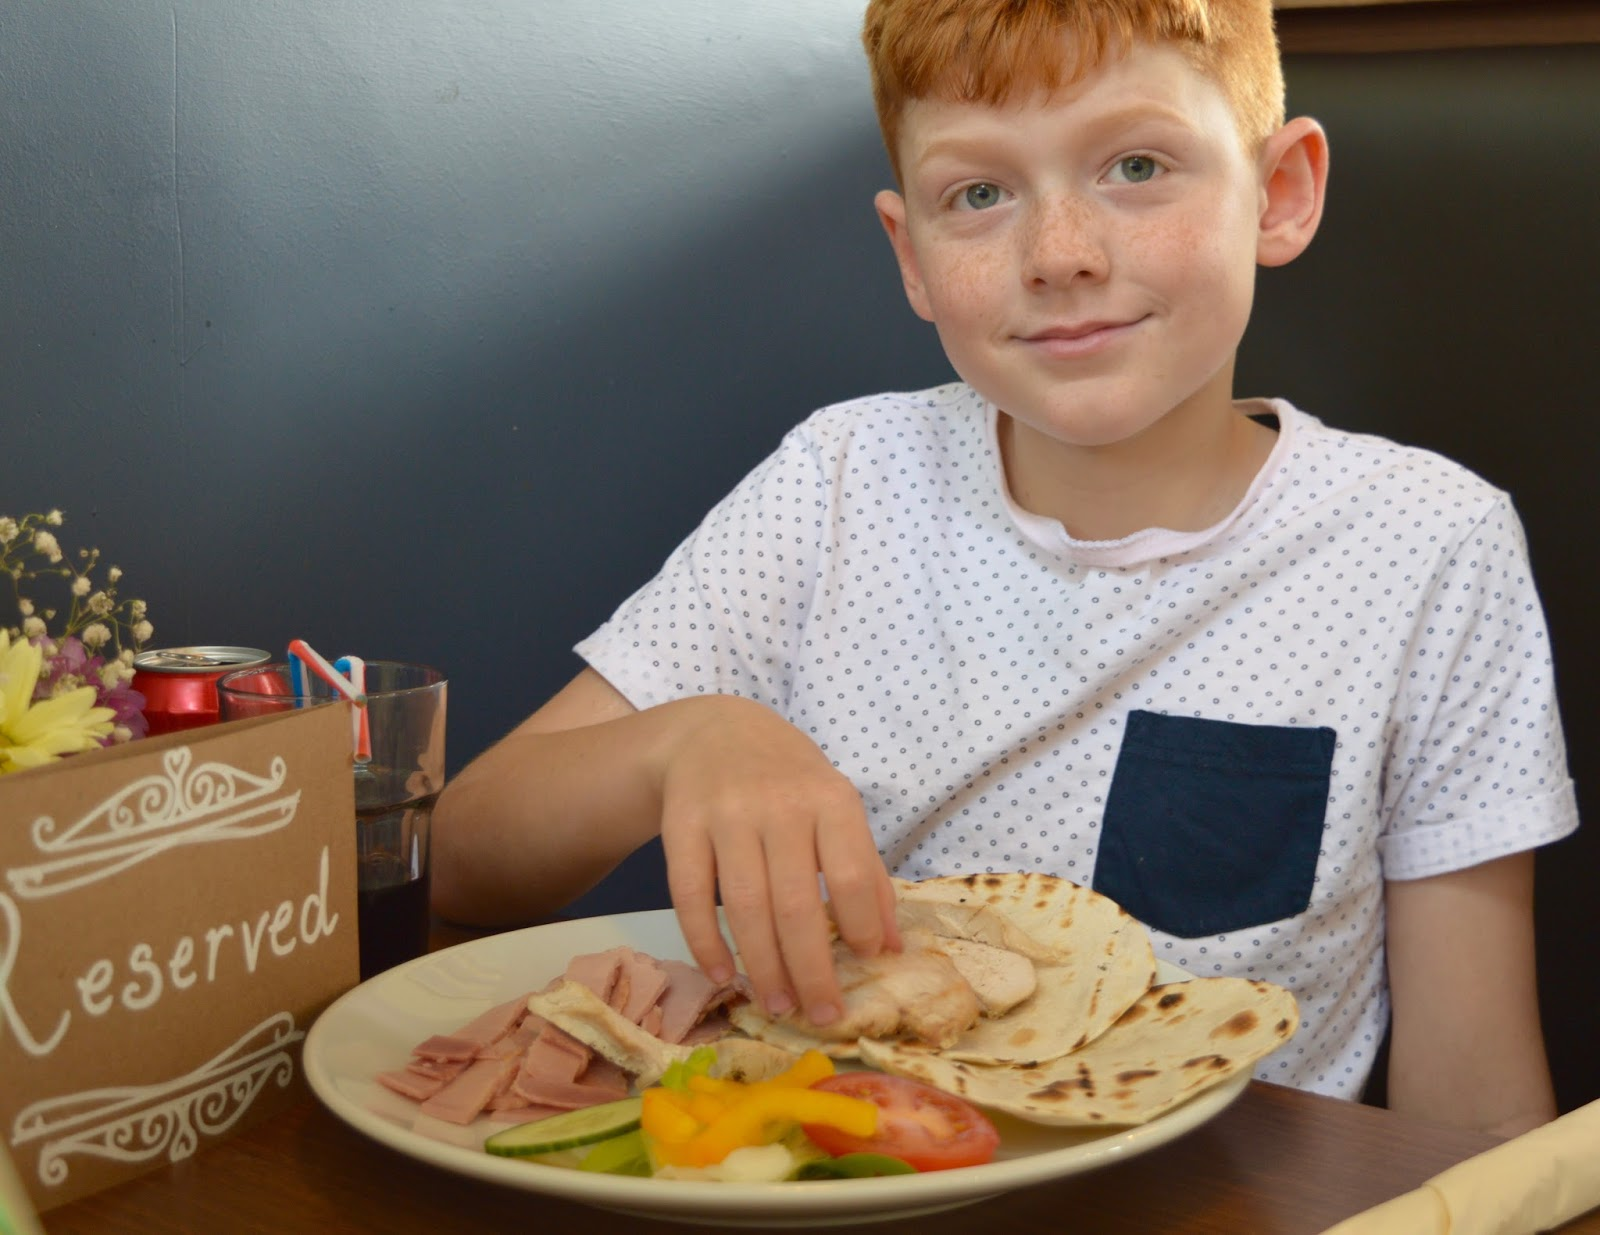 Cafe 32 | Linskill Centre, North Shields - A review - children's menu - make your own wrap